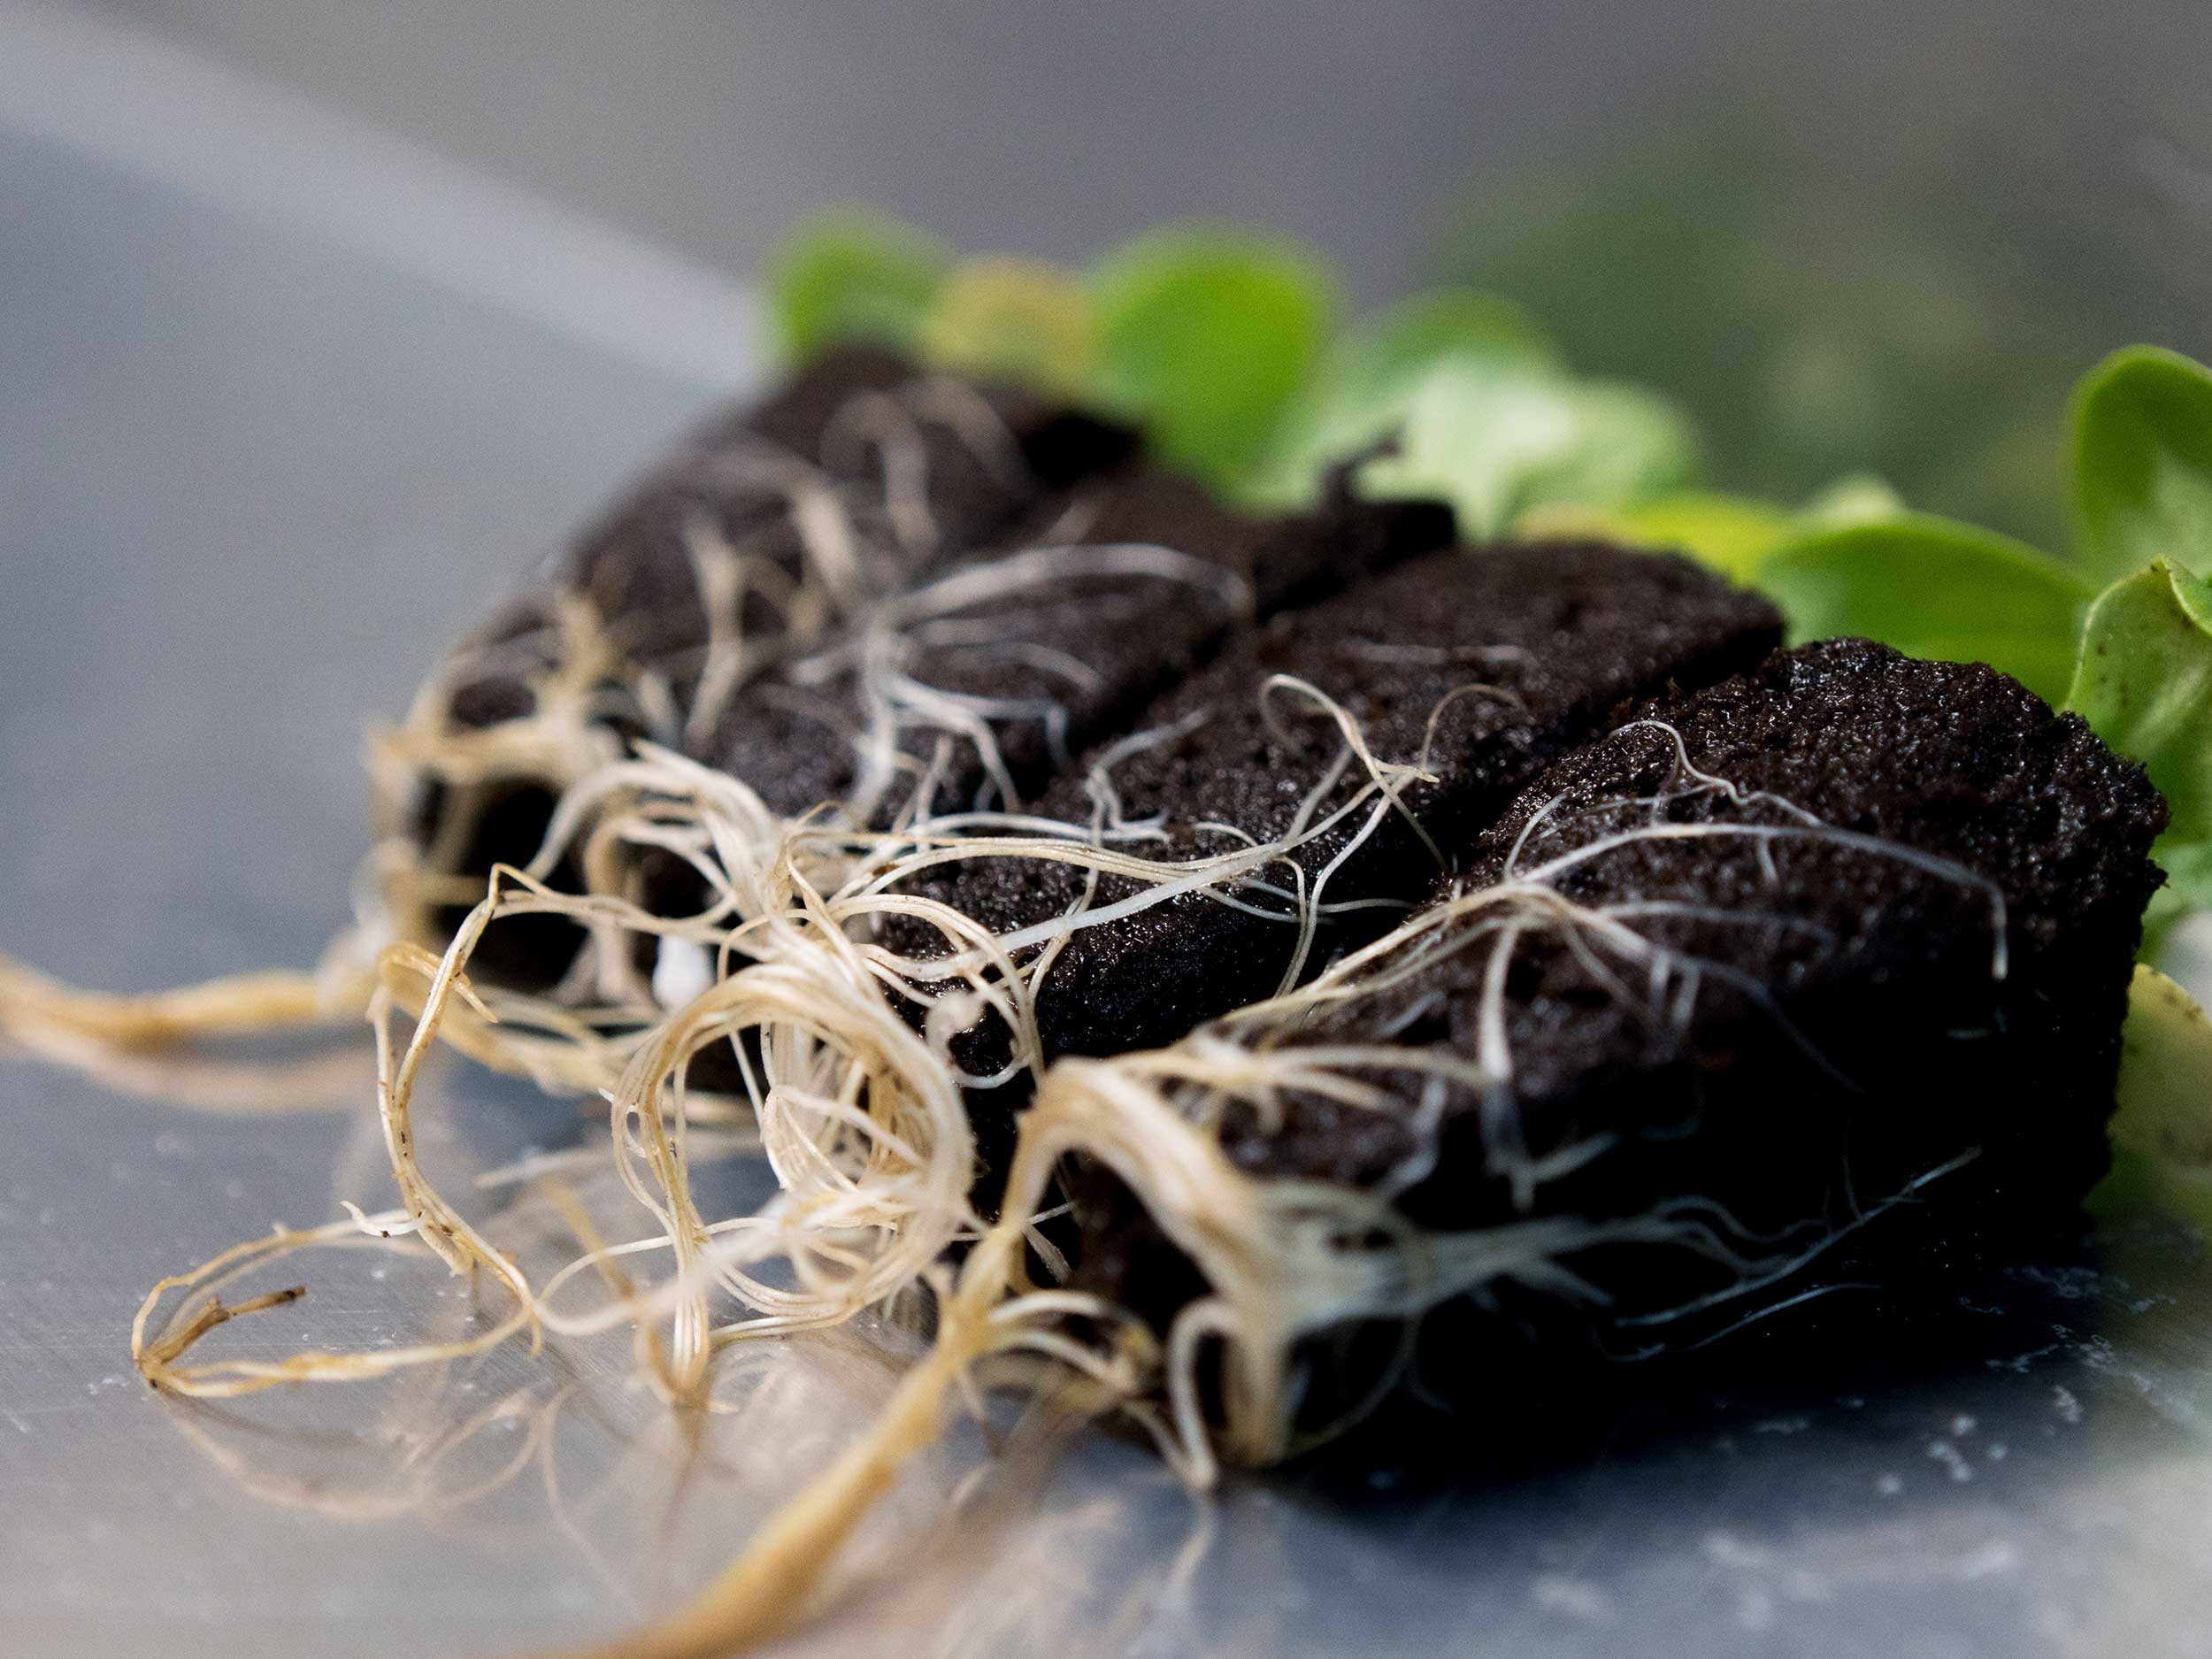 LGM_seedlings_with_roots.jpg